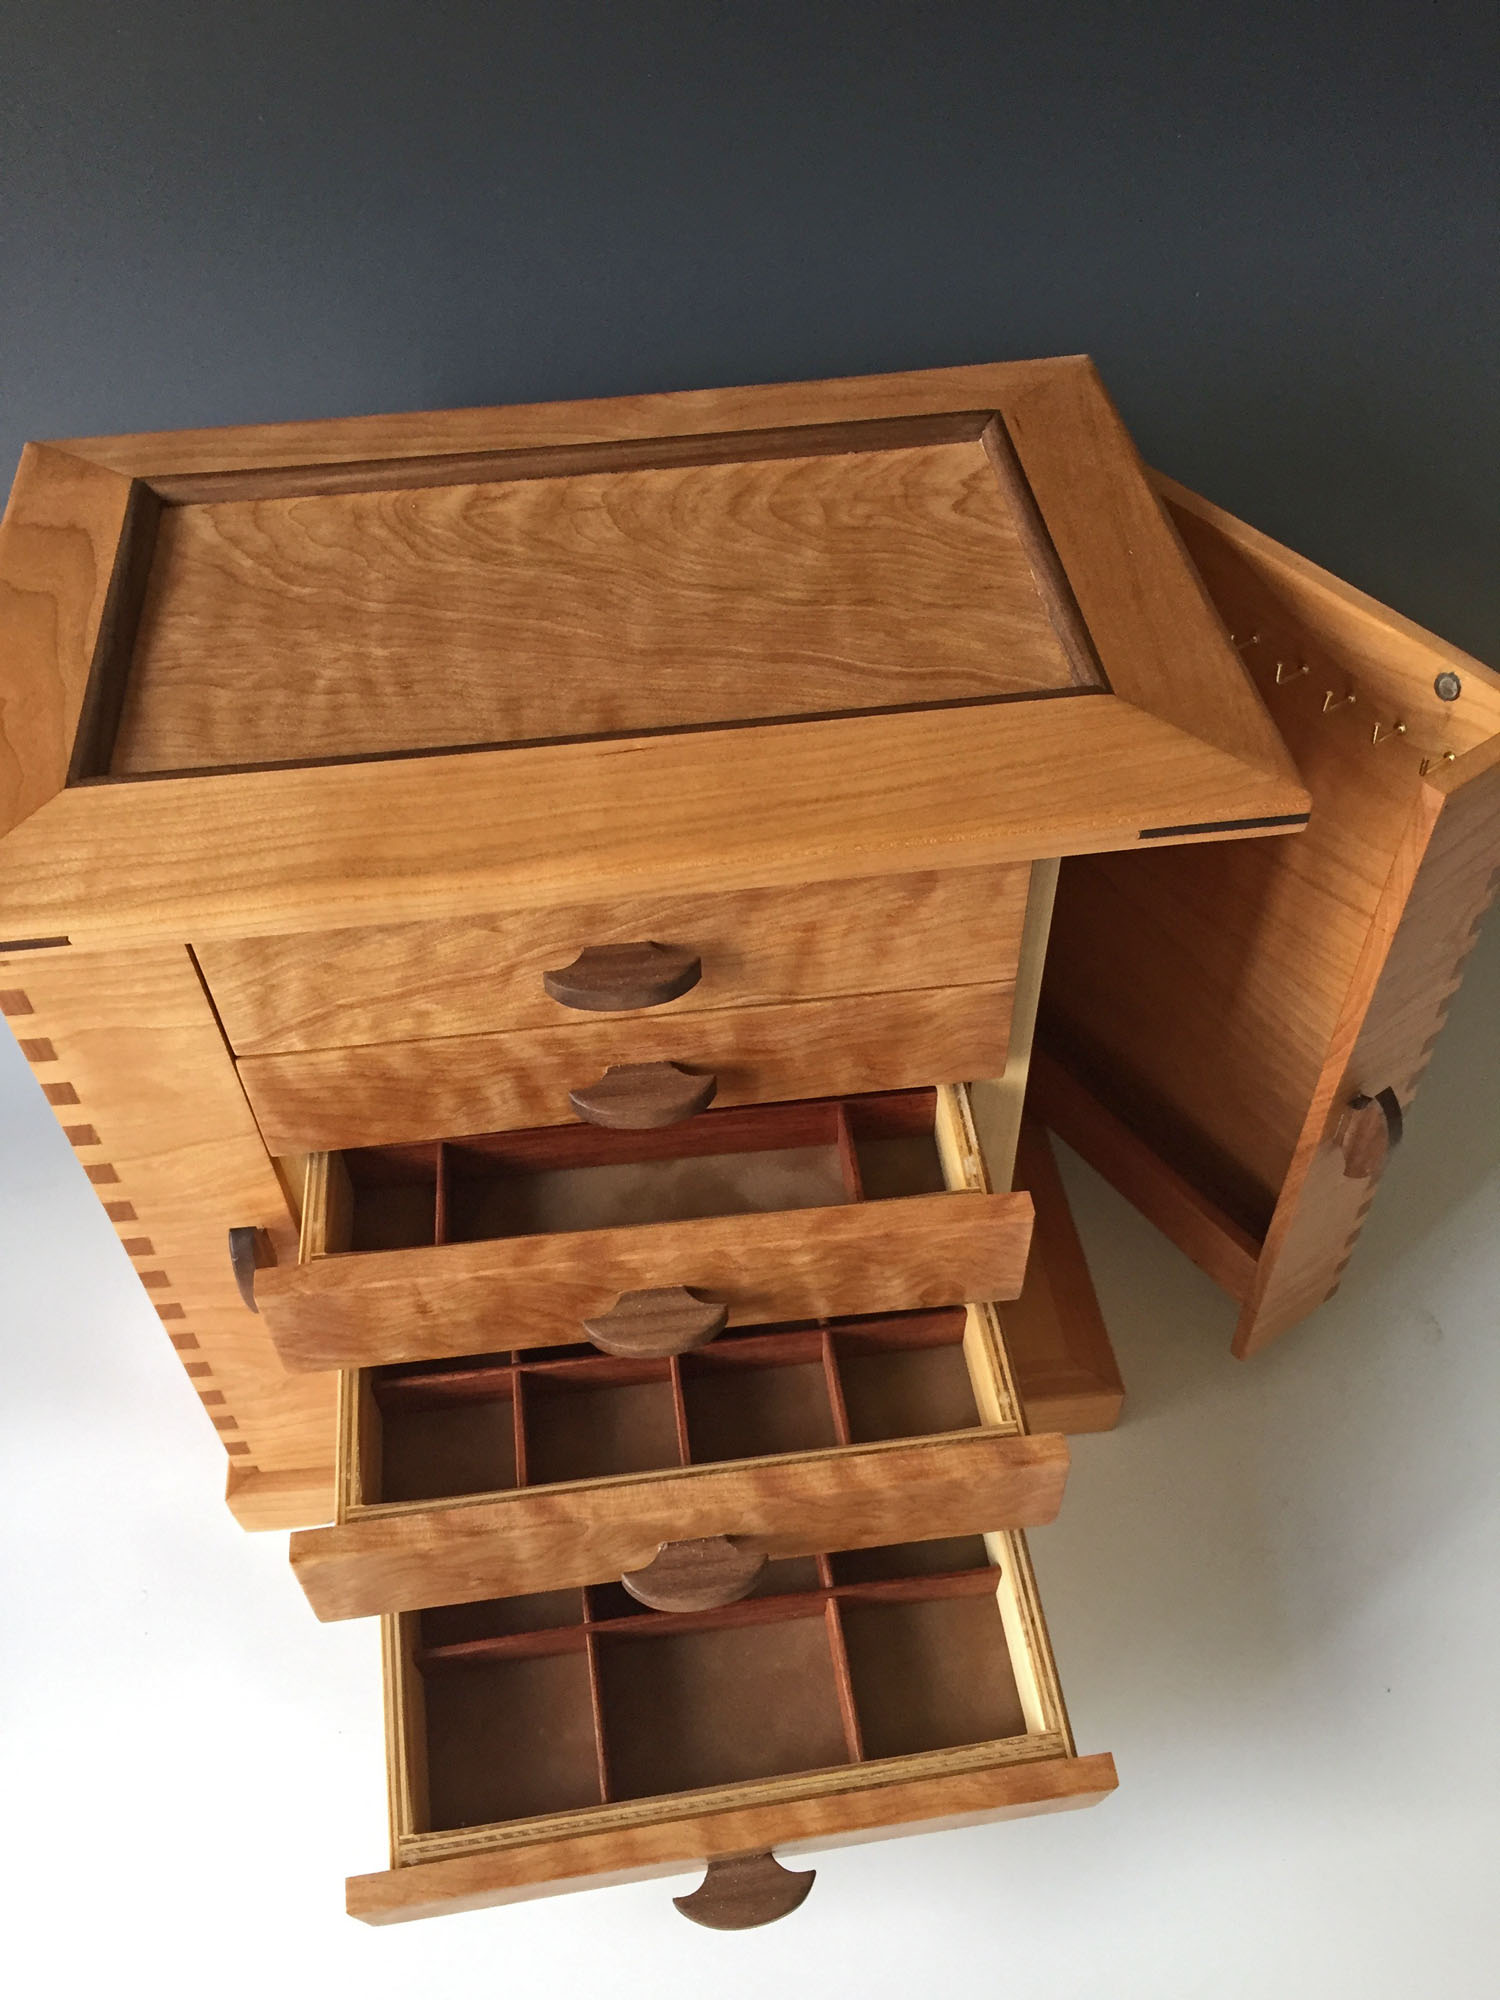 Necklace holders jewelry box made of natural cherry wood, open to show the jewelry organizer drawers and hanging hooks.